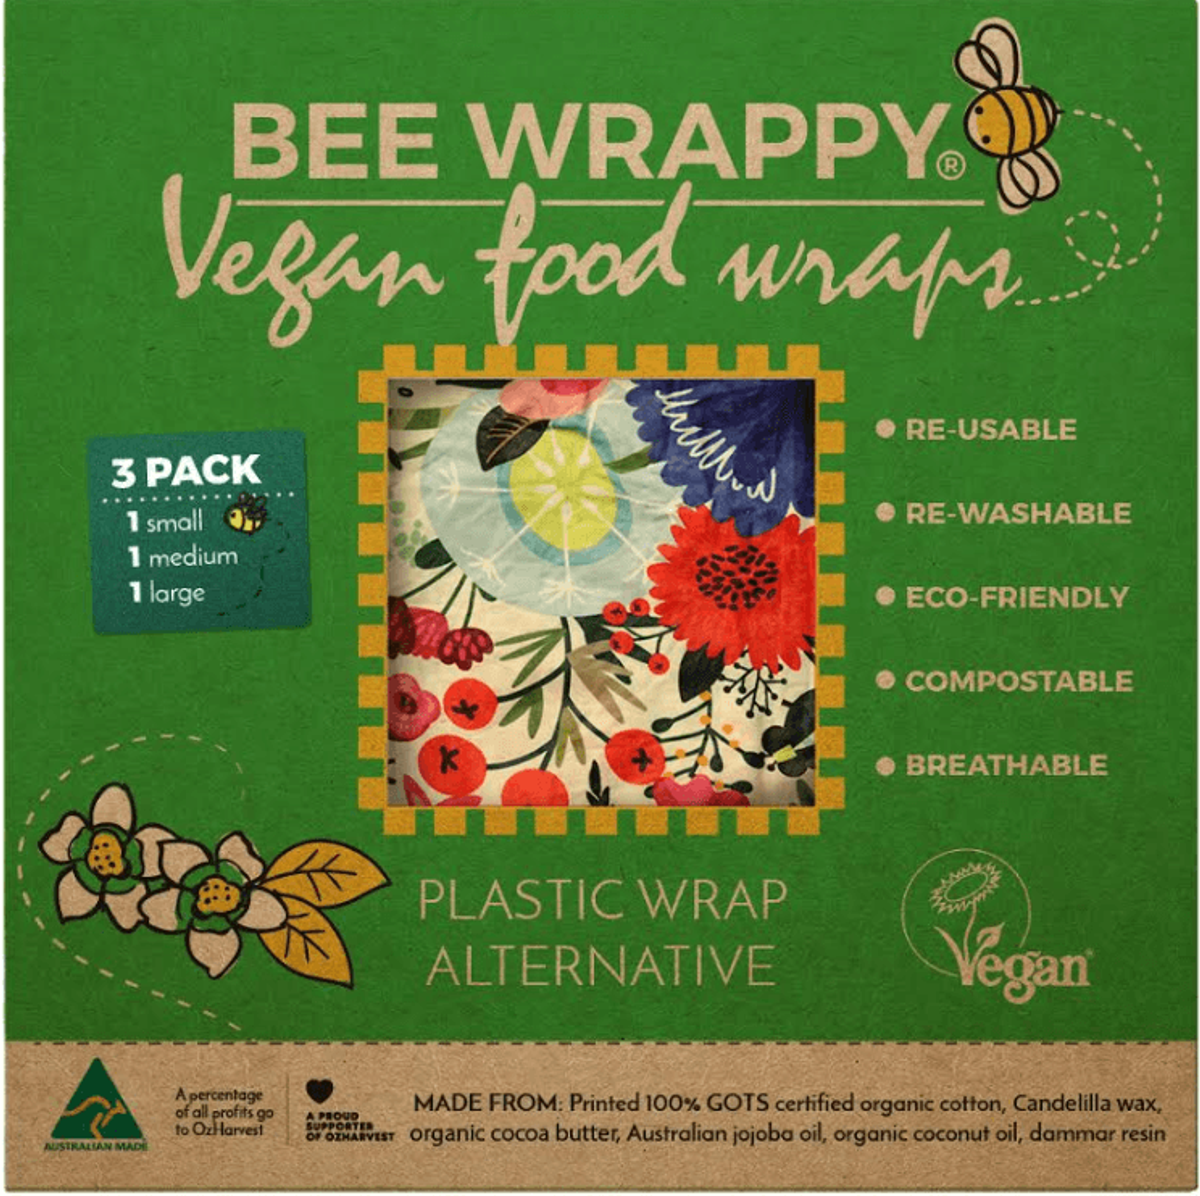 3-pk veganske voksark Bee Wrappy